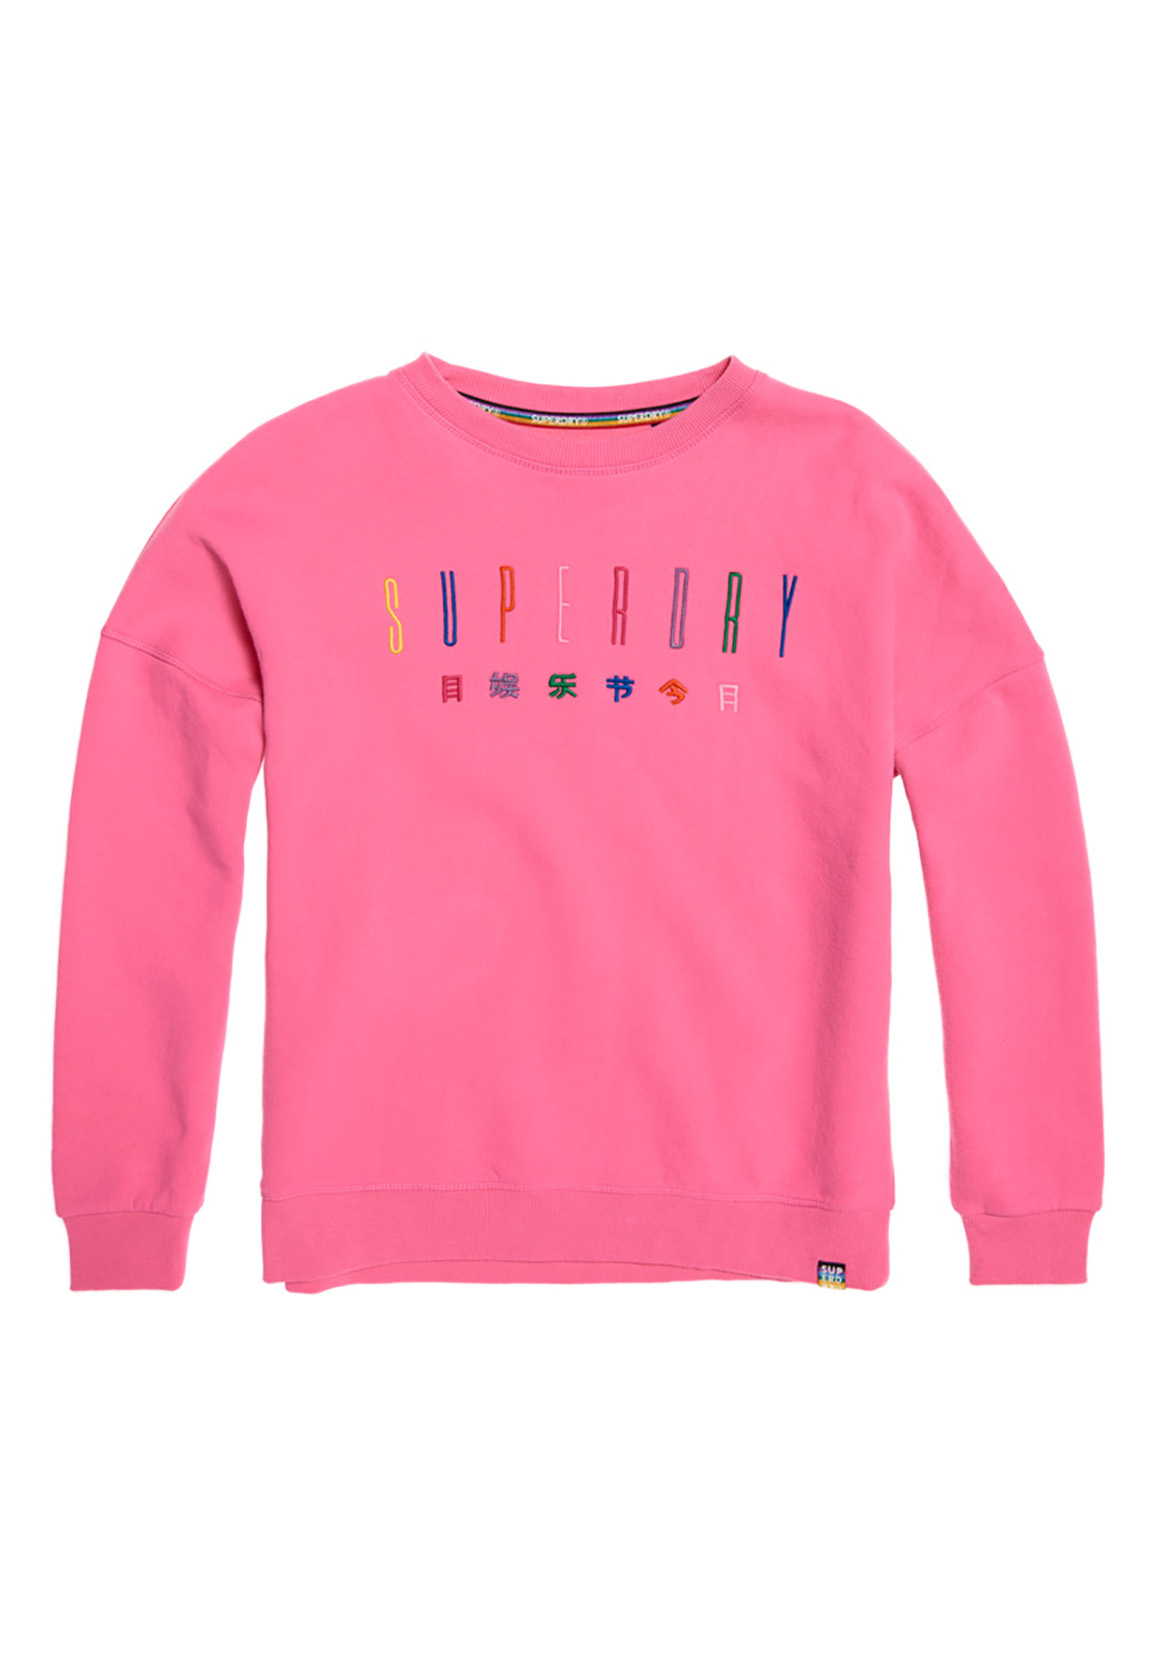 the latest 0453f 26806 Superdry Sweatshirt Damen CARLY CARNIVAL EMBROIDERED Active Pink